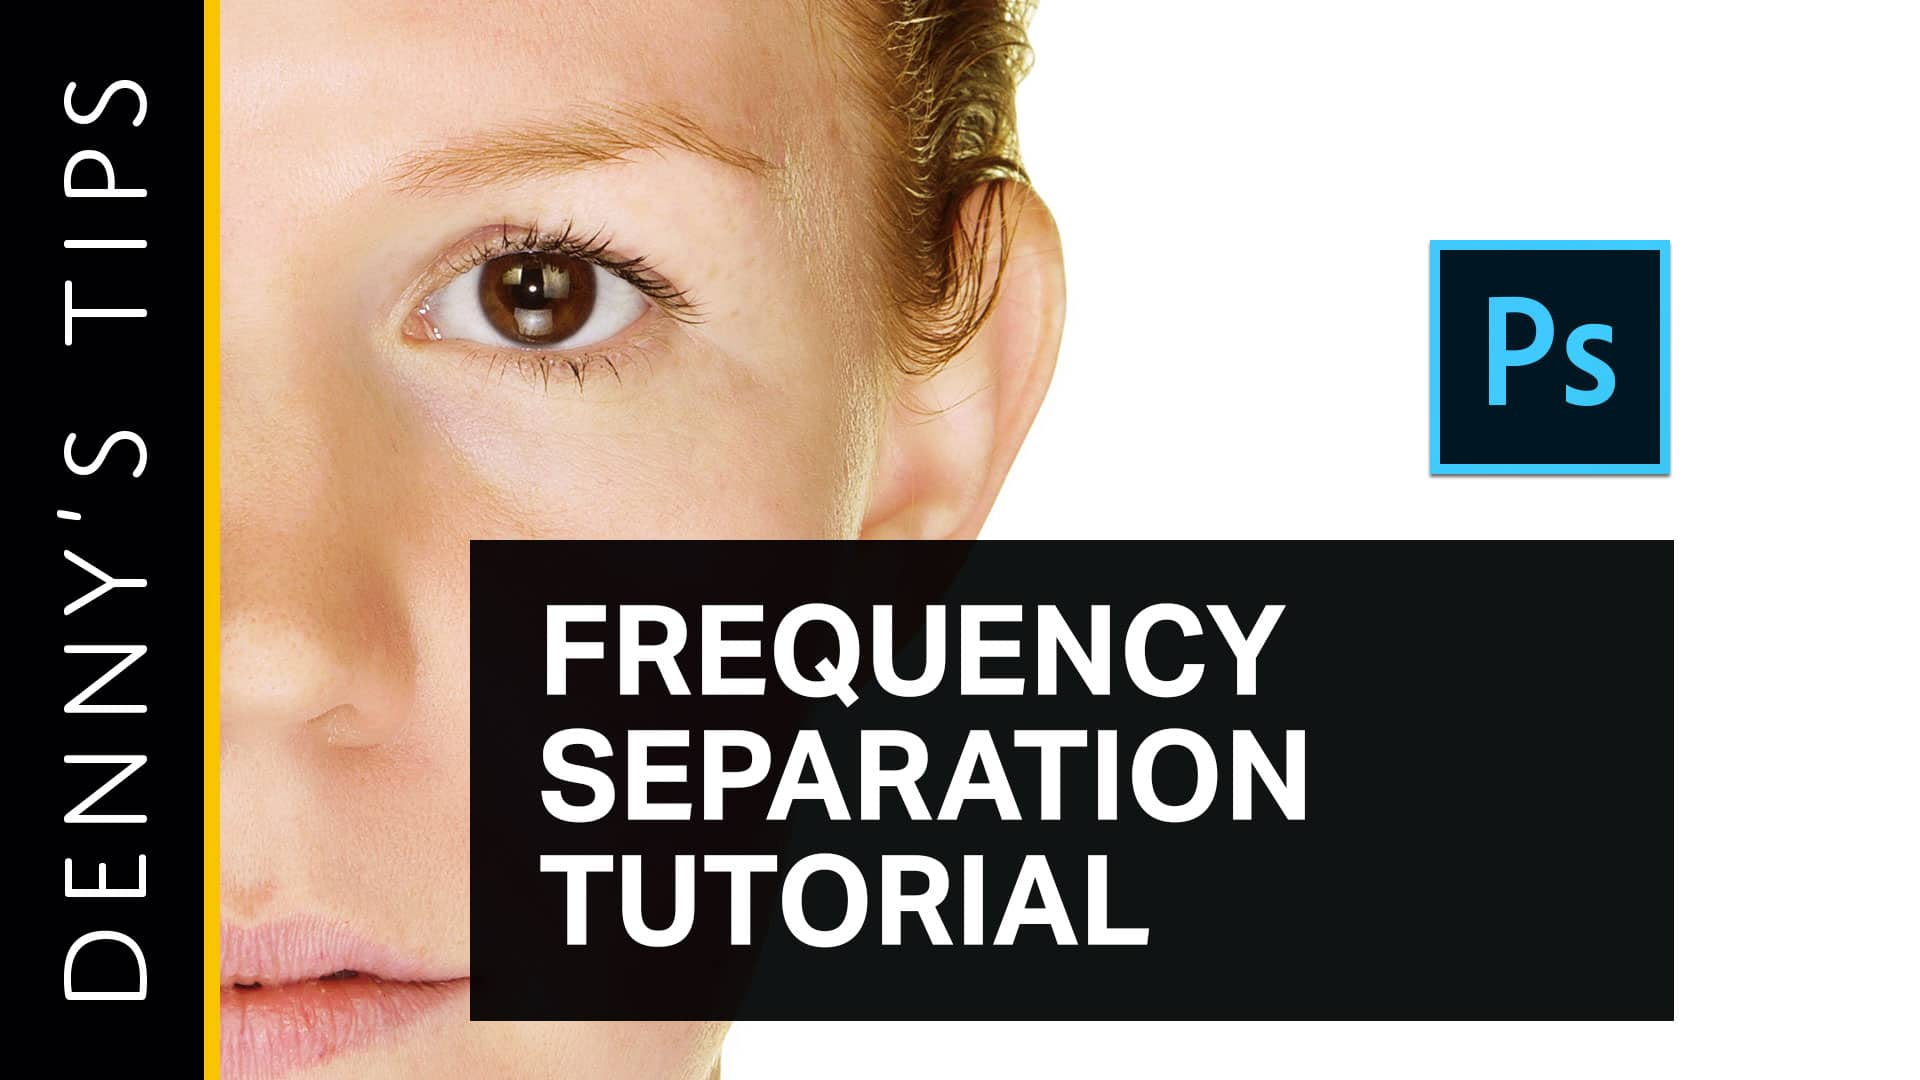 Frequency Separation Photoshop Tutorial (Nondestructive & Fully Editable Layers)